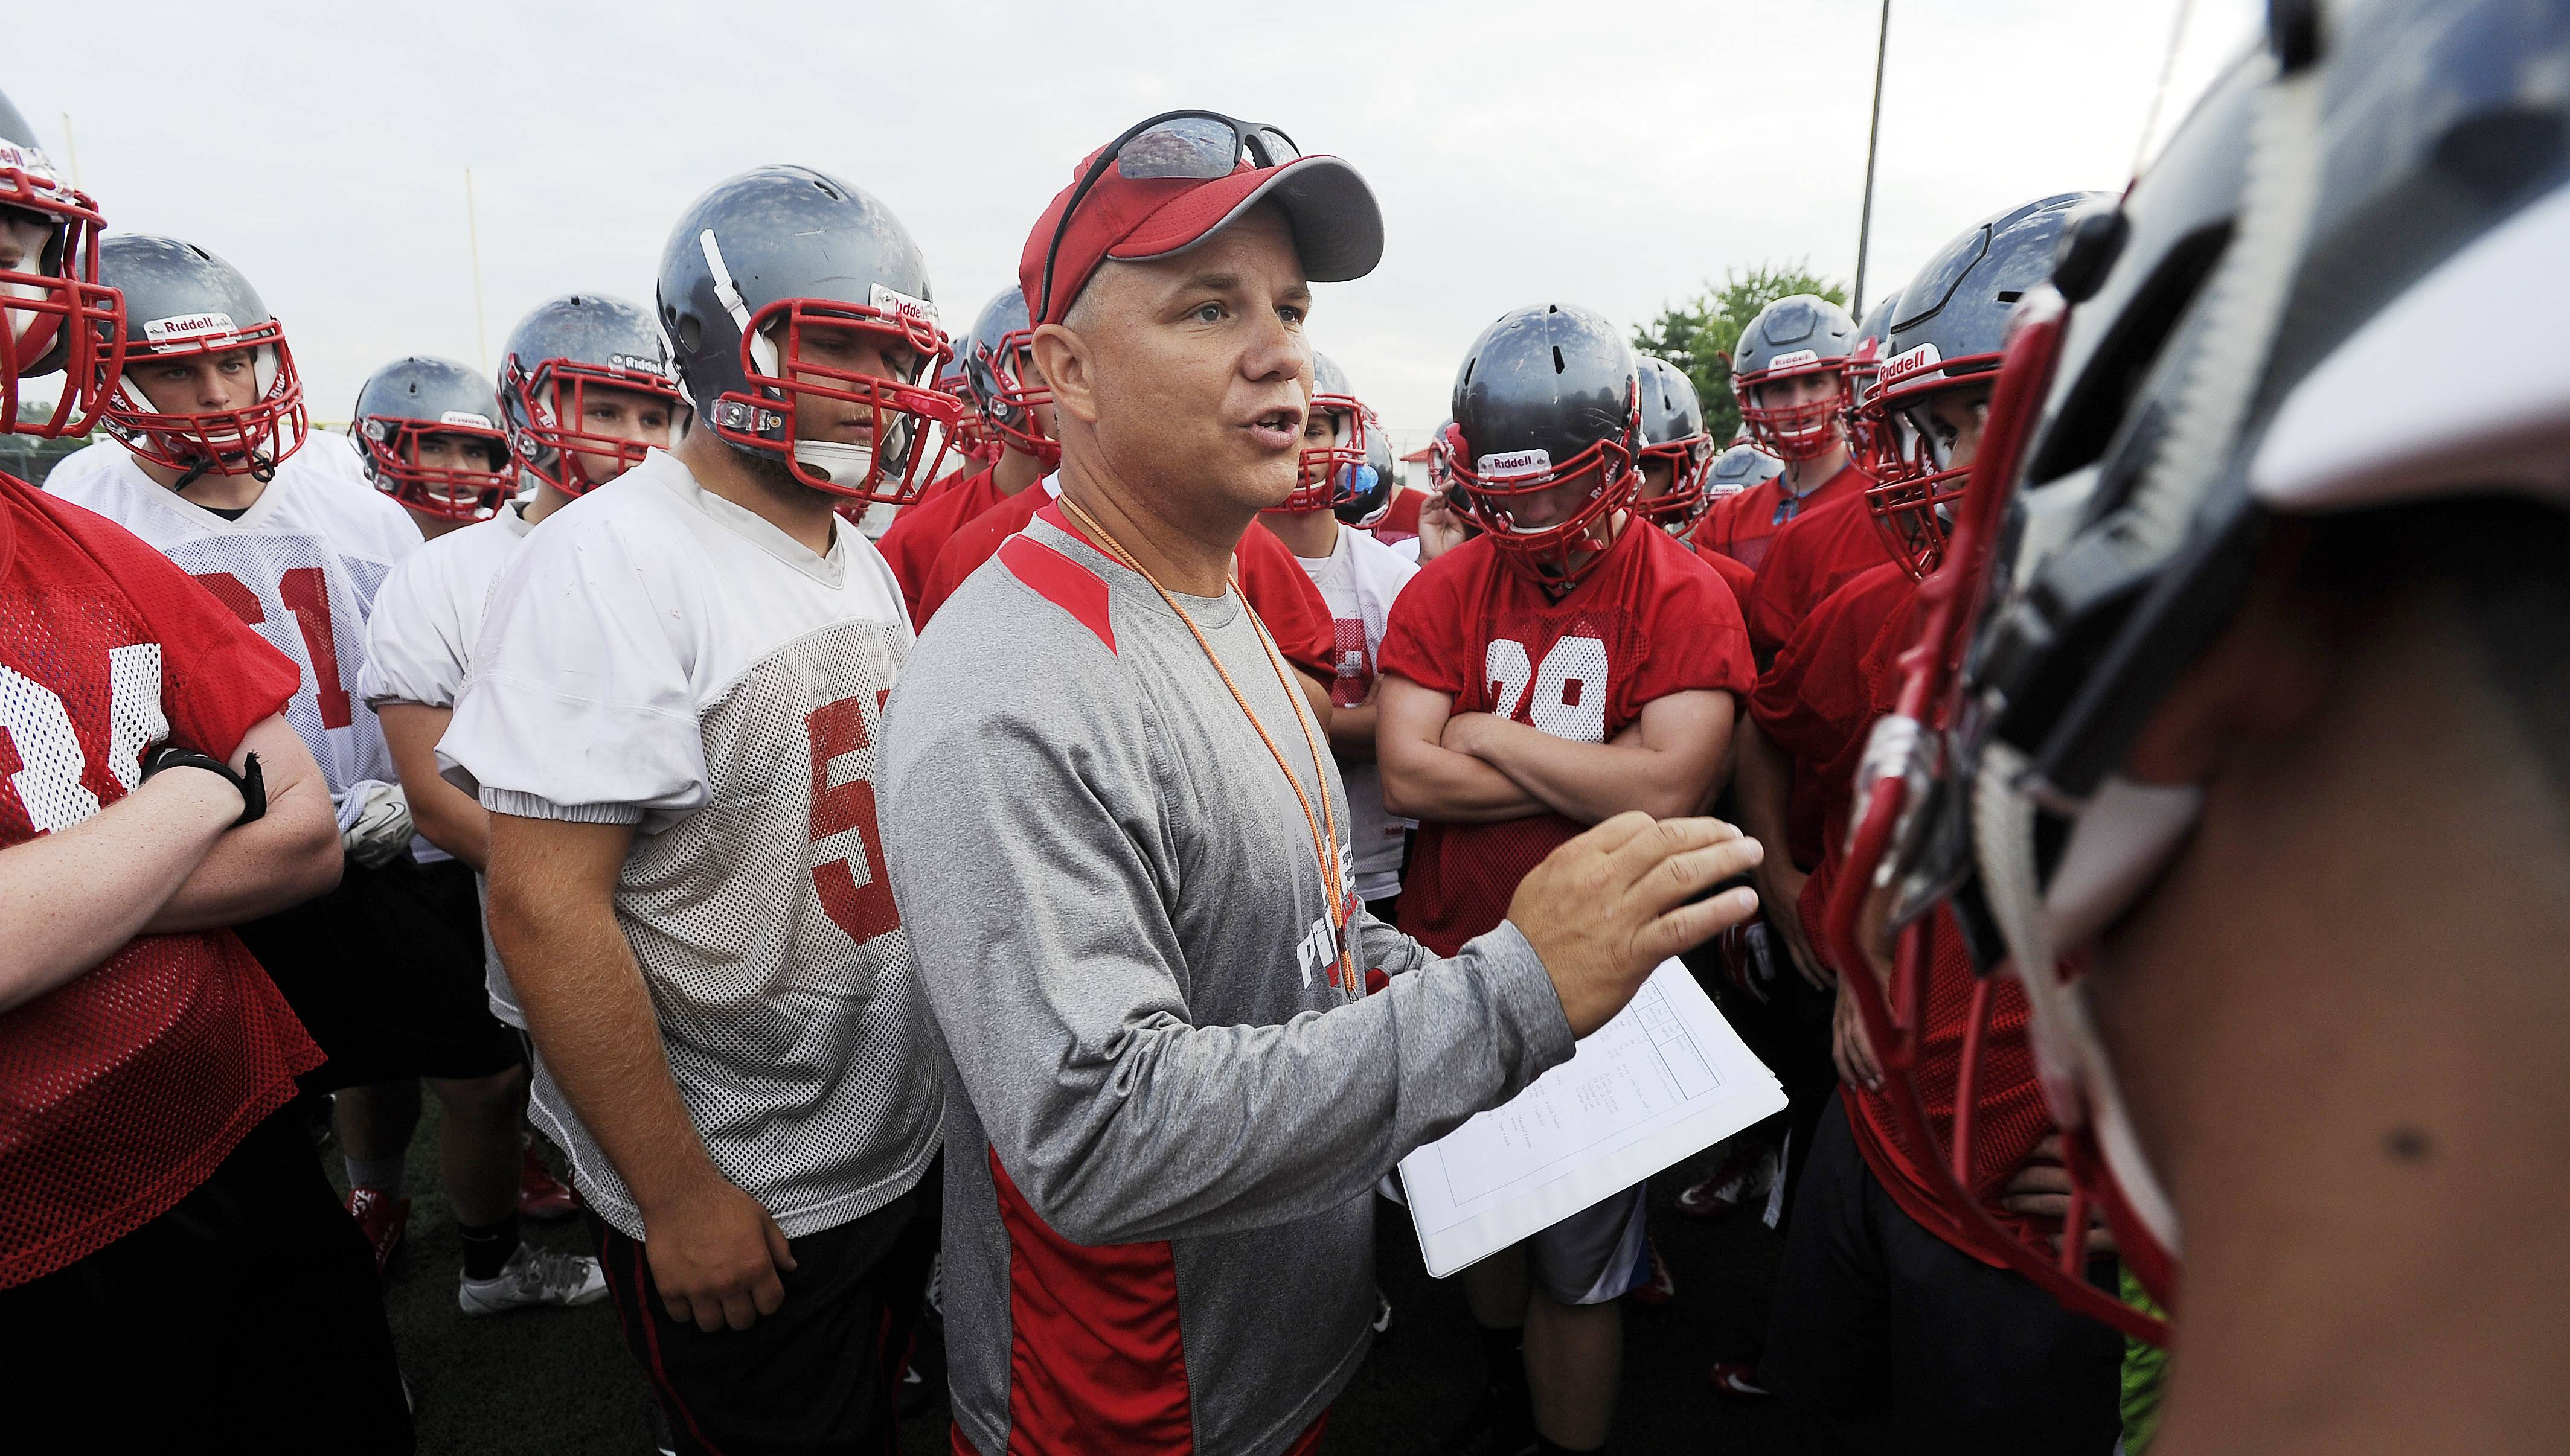 Rick Splitt has announced he's stepping down as Palatine's football coach in order to watch his own sons compete in high school football.